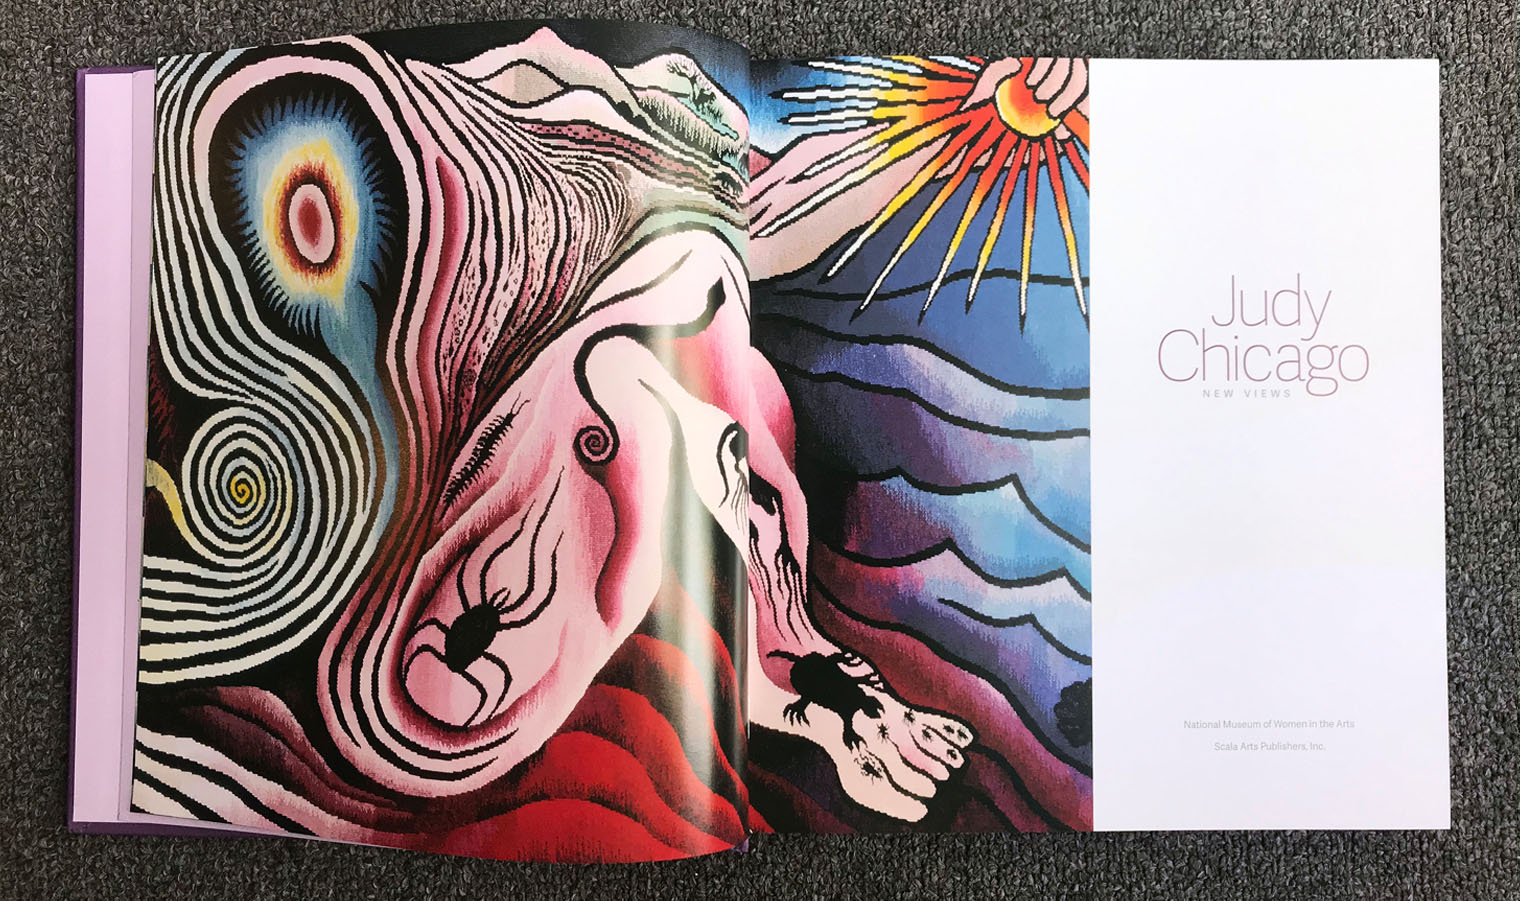 Judy Chicago: New Views